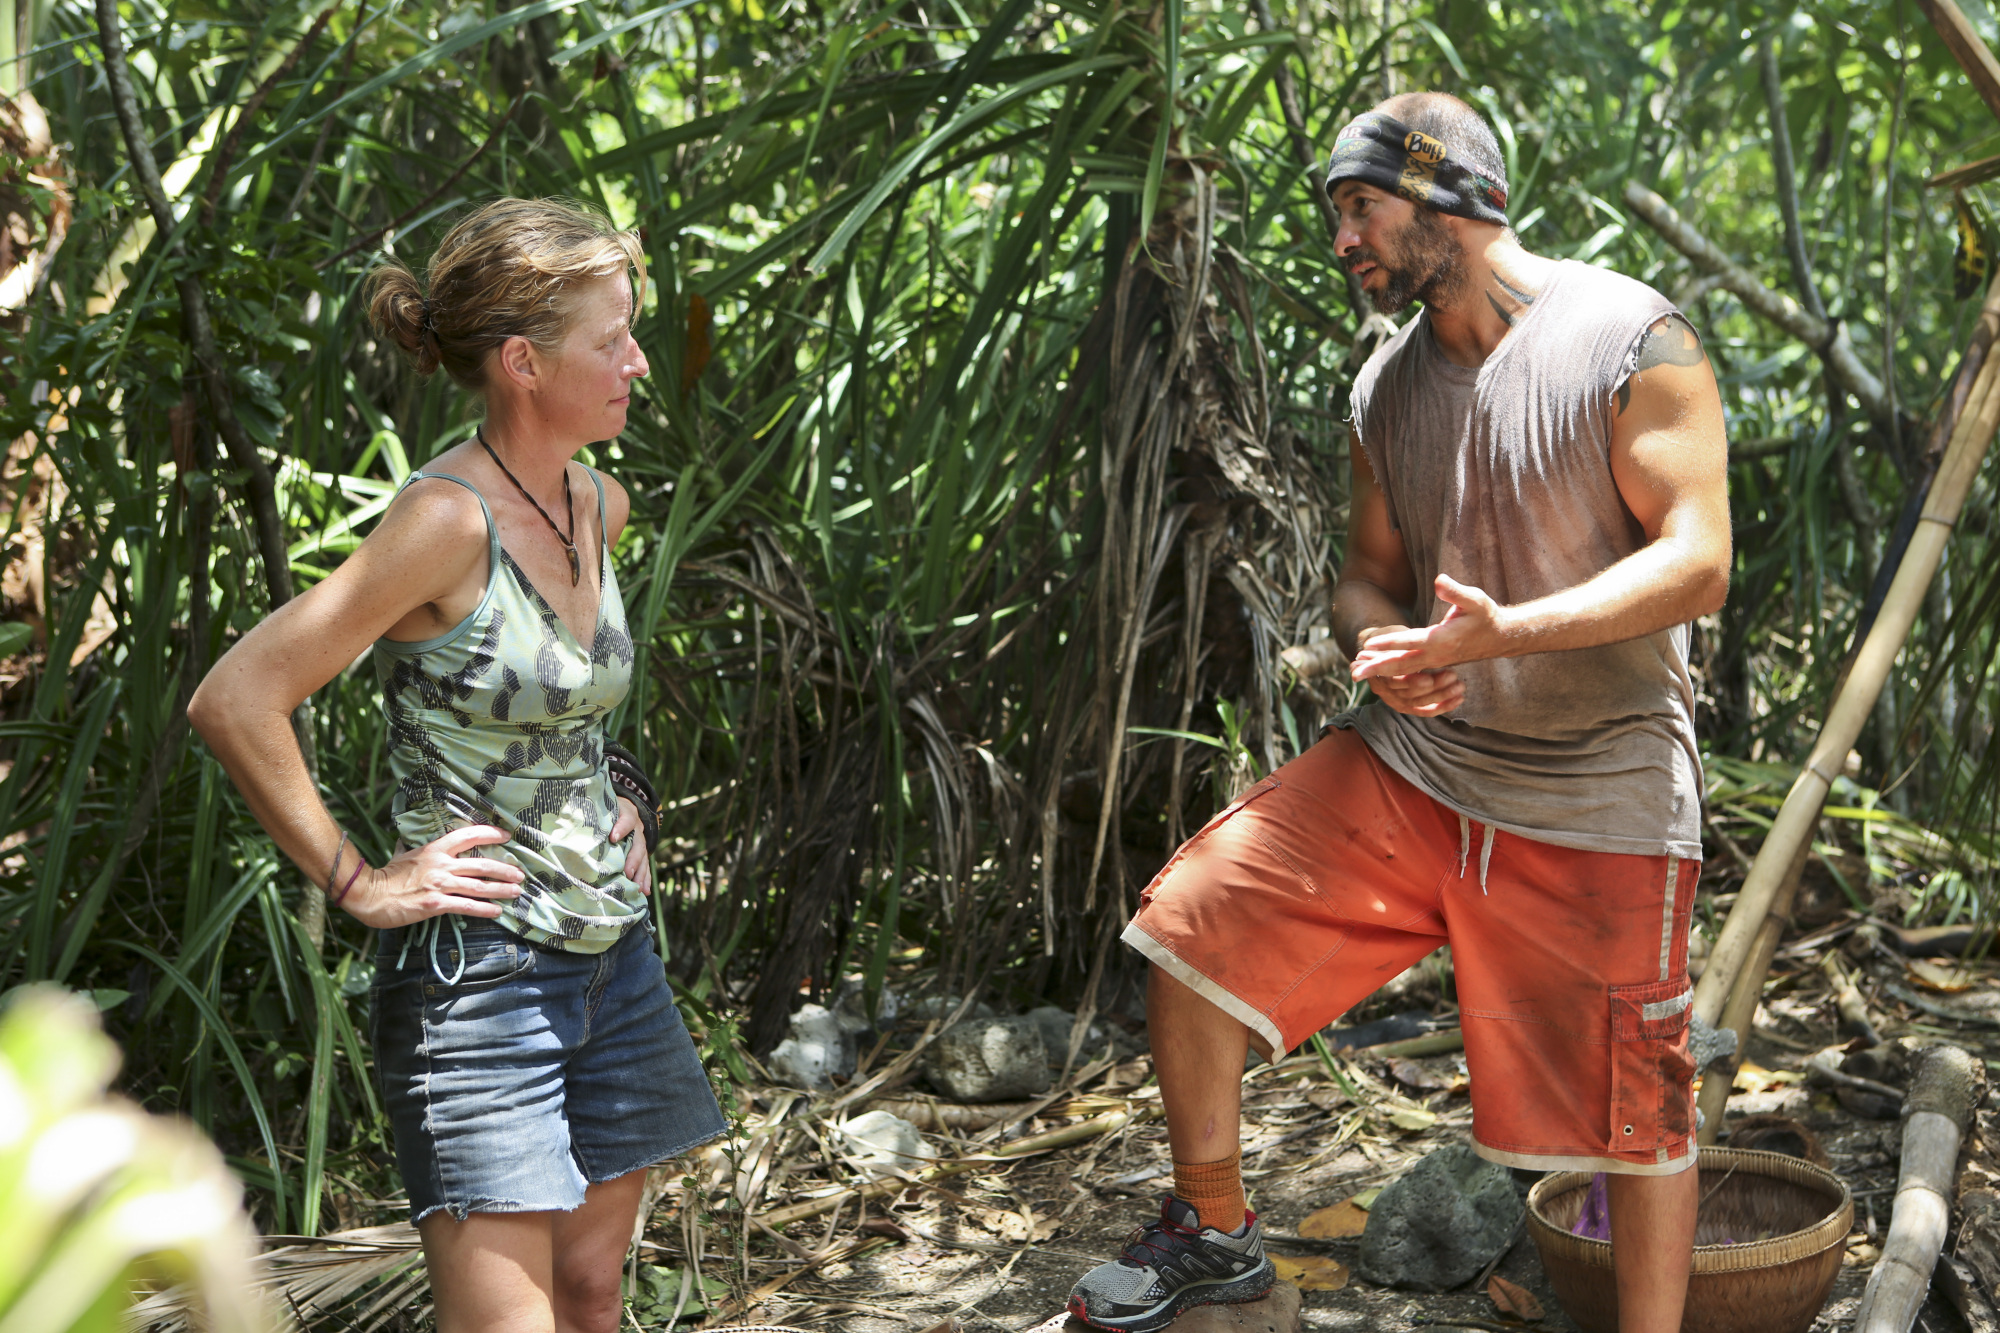 Kass and Tony in Season 28 Episode 9